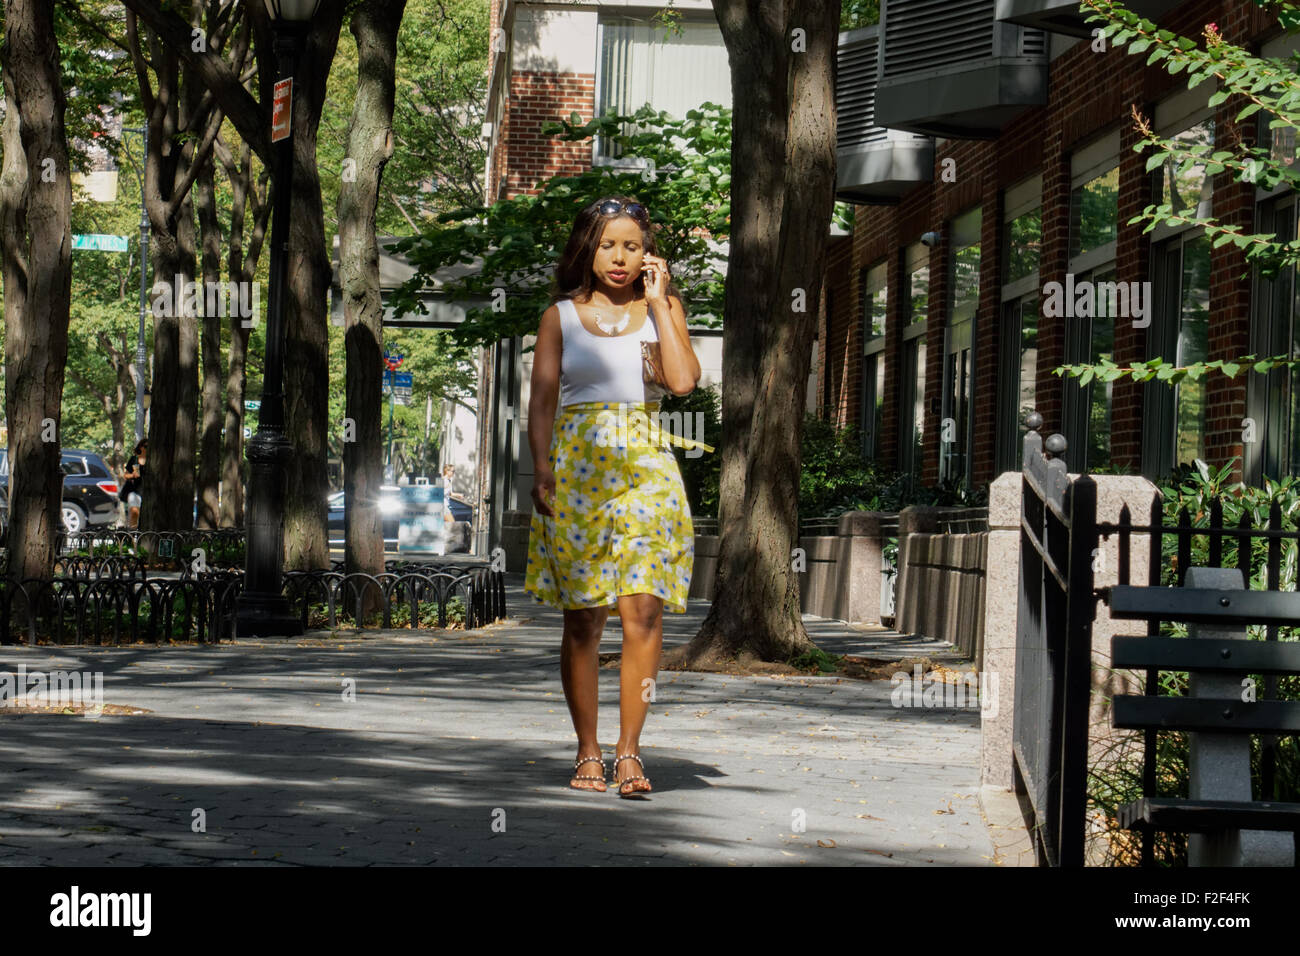 A young woman talking on a cellphone in Battery Park City, a neighborhood in Manhattan, New York City. - Stock Image